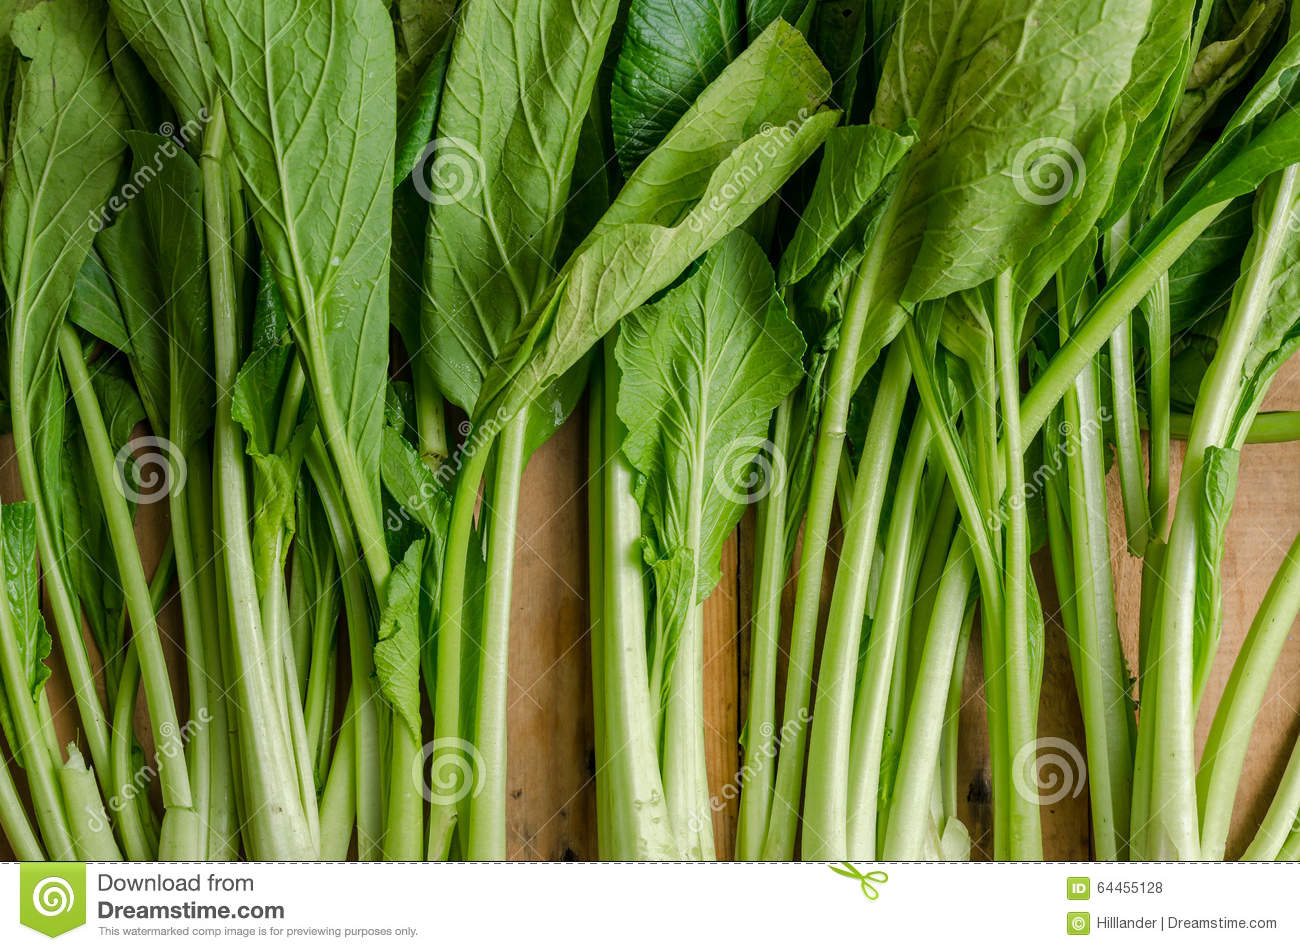 Vegetable Fresh Green Chinese Cabbage Bok Choy Pok Choi Or Pa